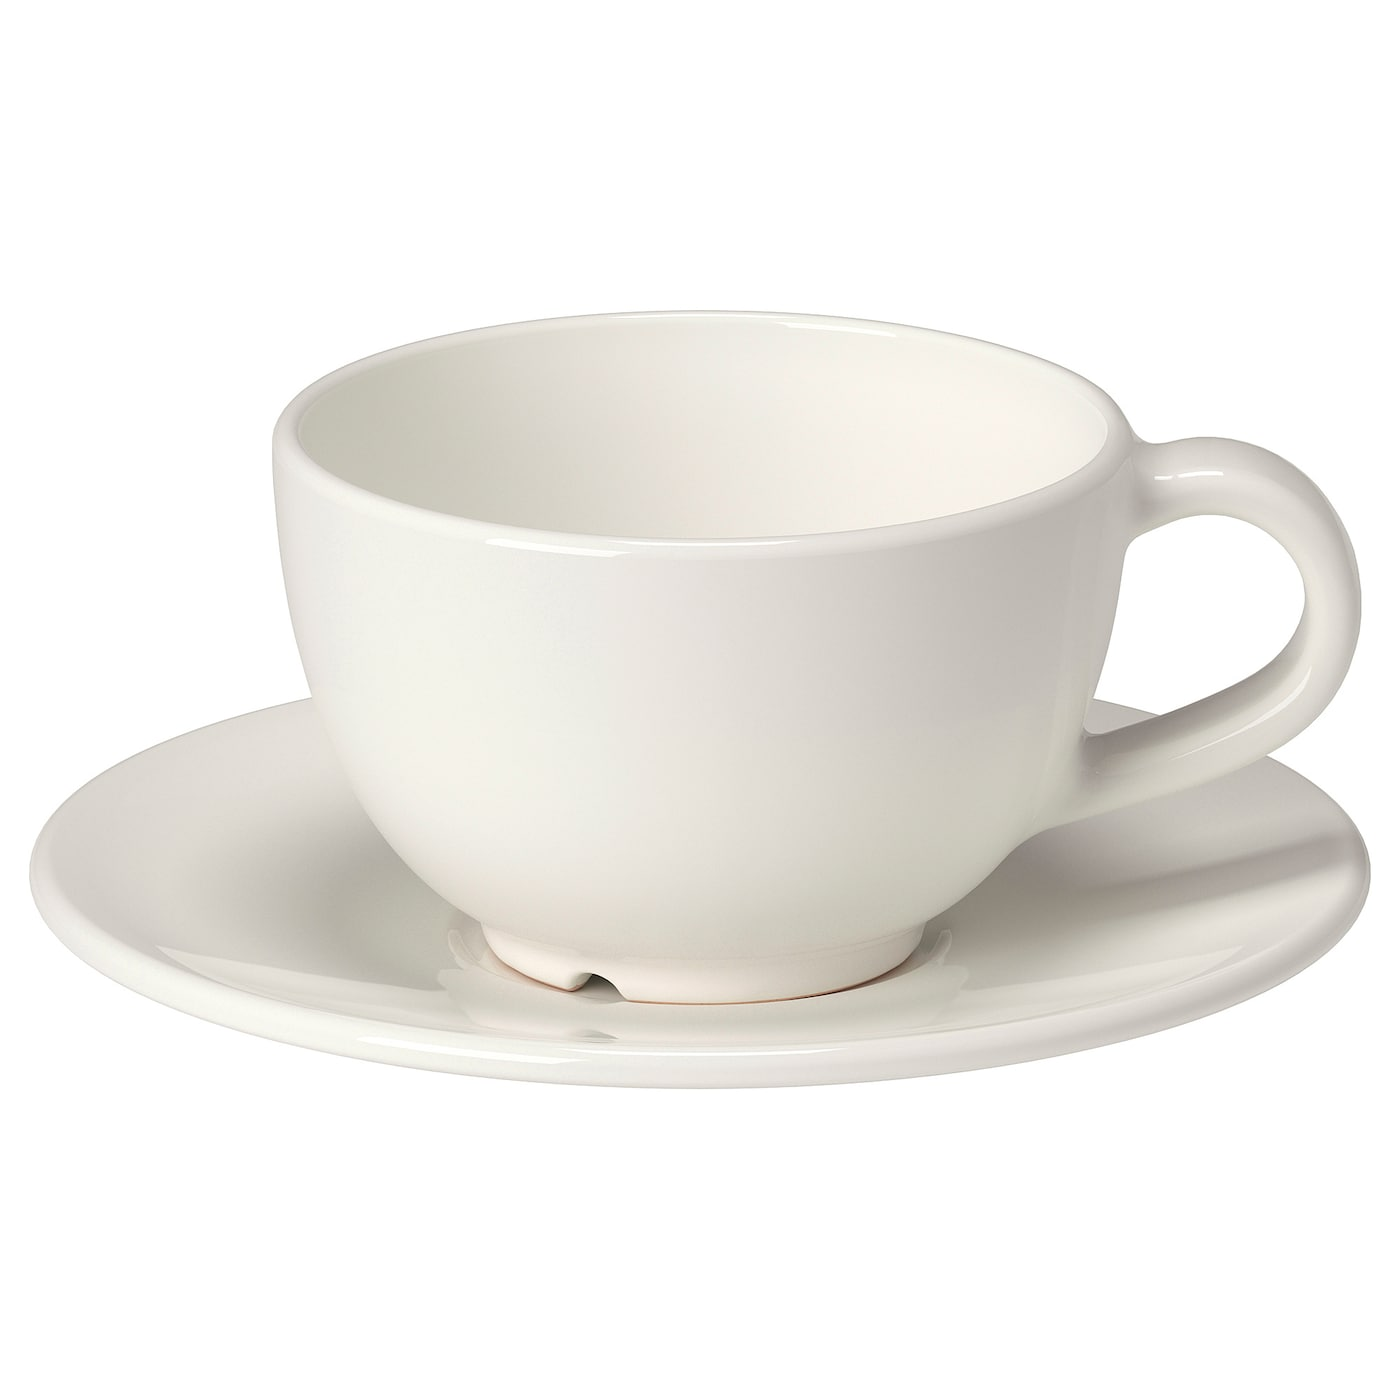 VARDAGEN Coffee cup and saucer off white IKEA